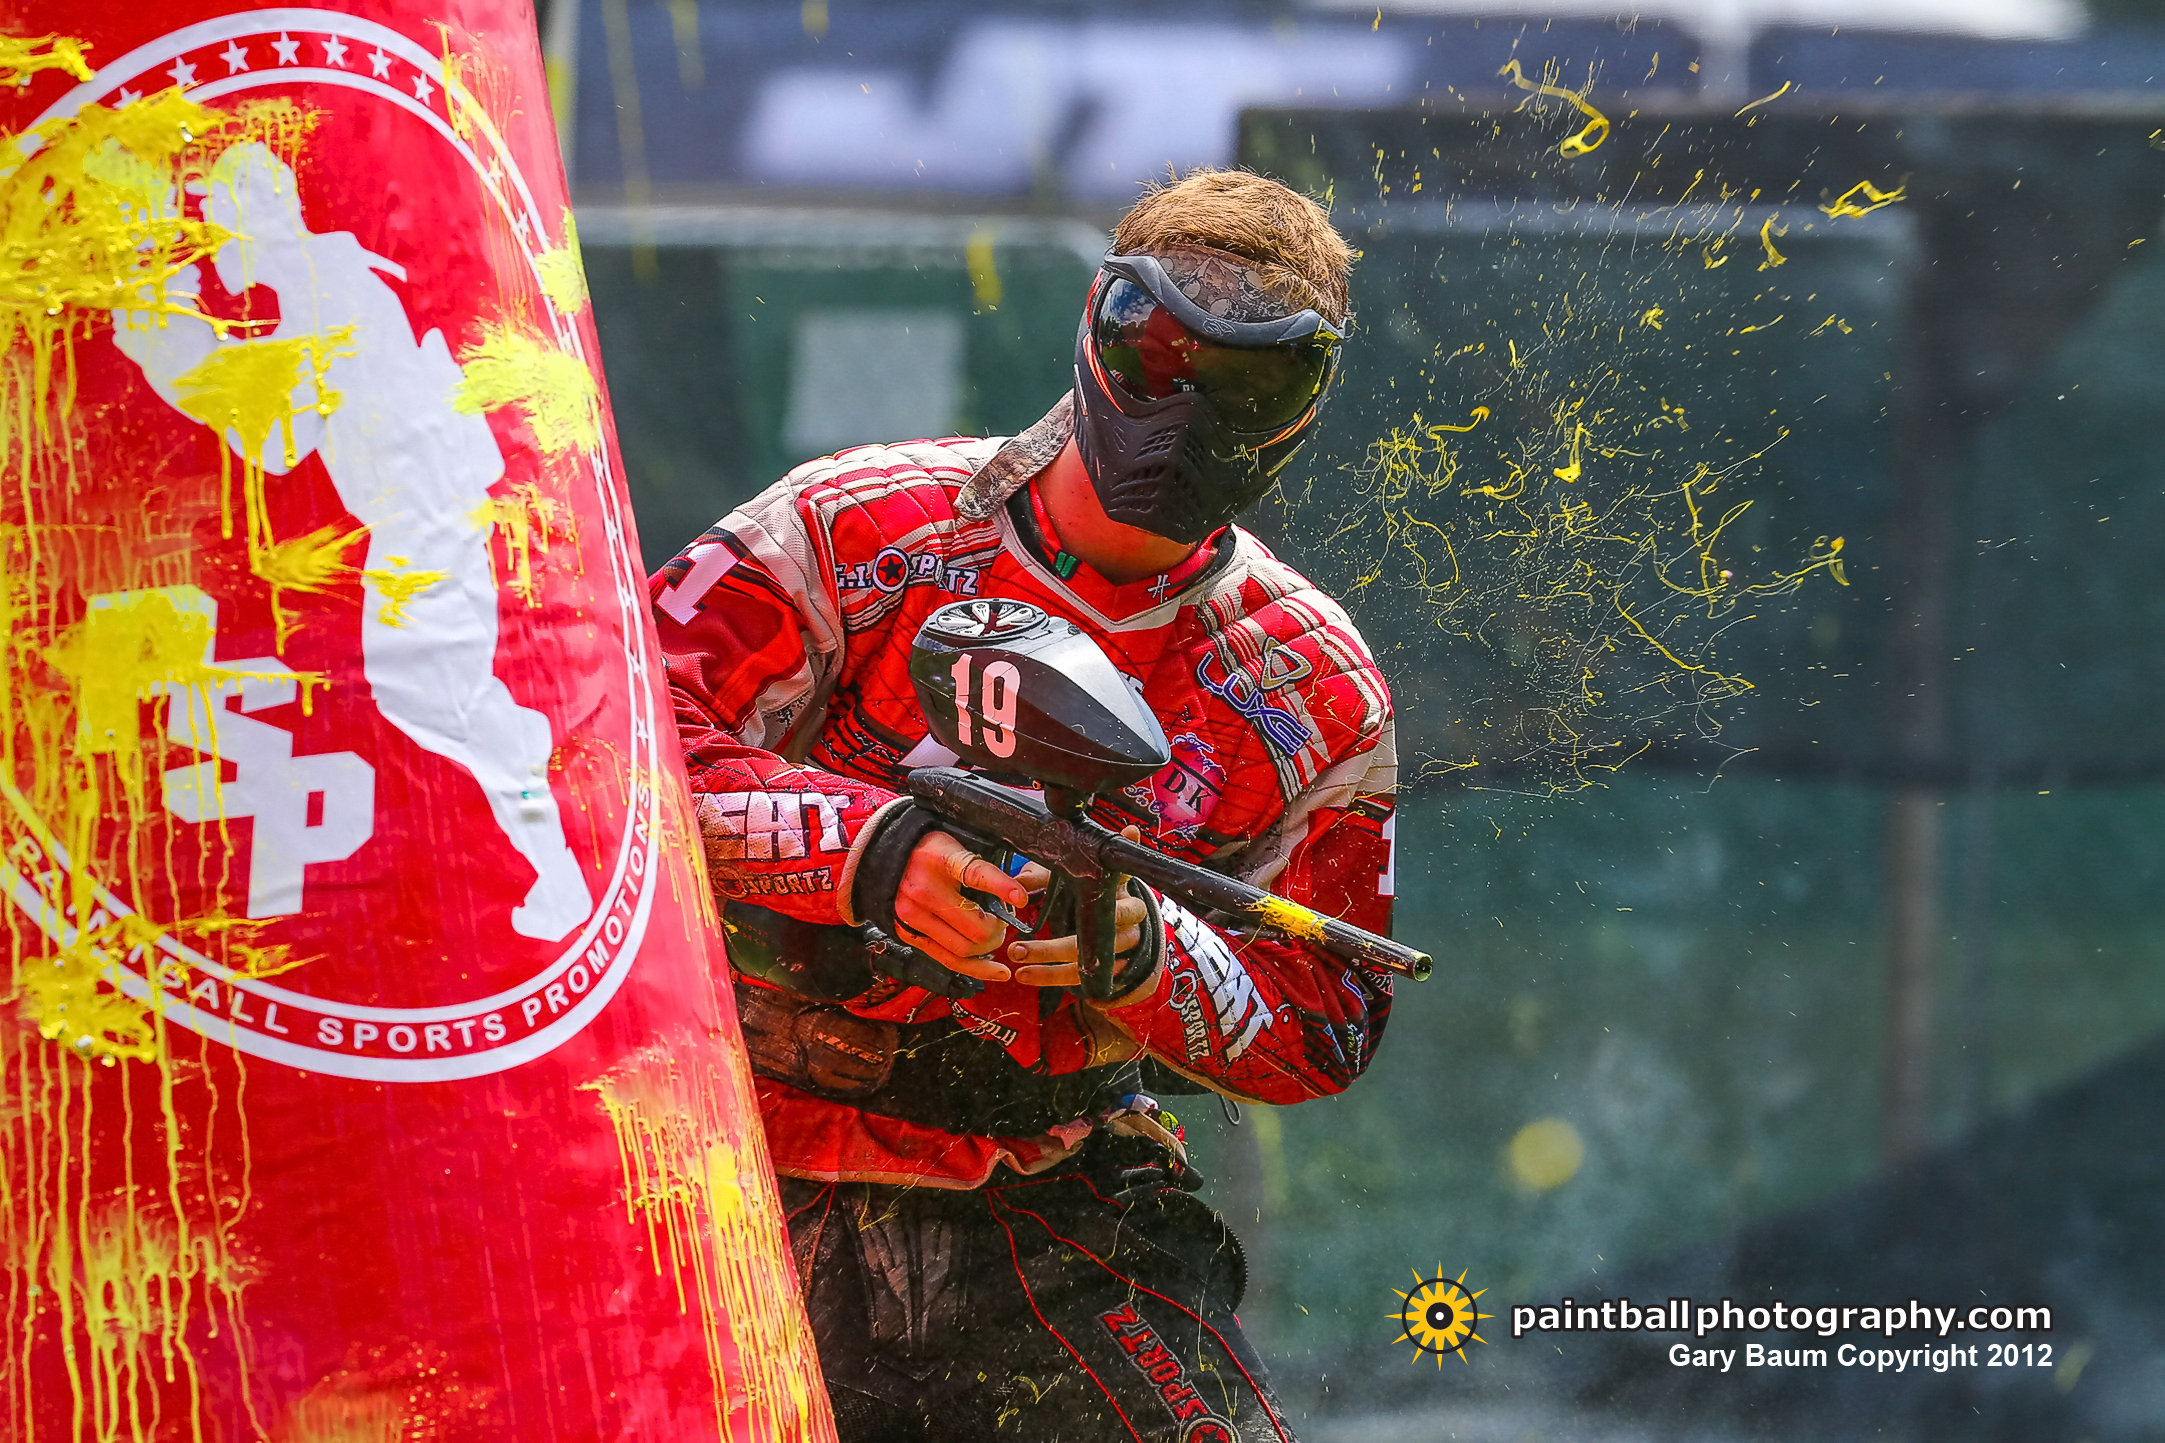 Gary Baum's Paintball Articles - Social Paintball